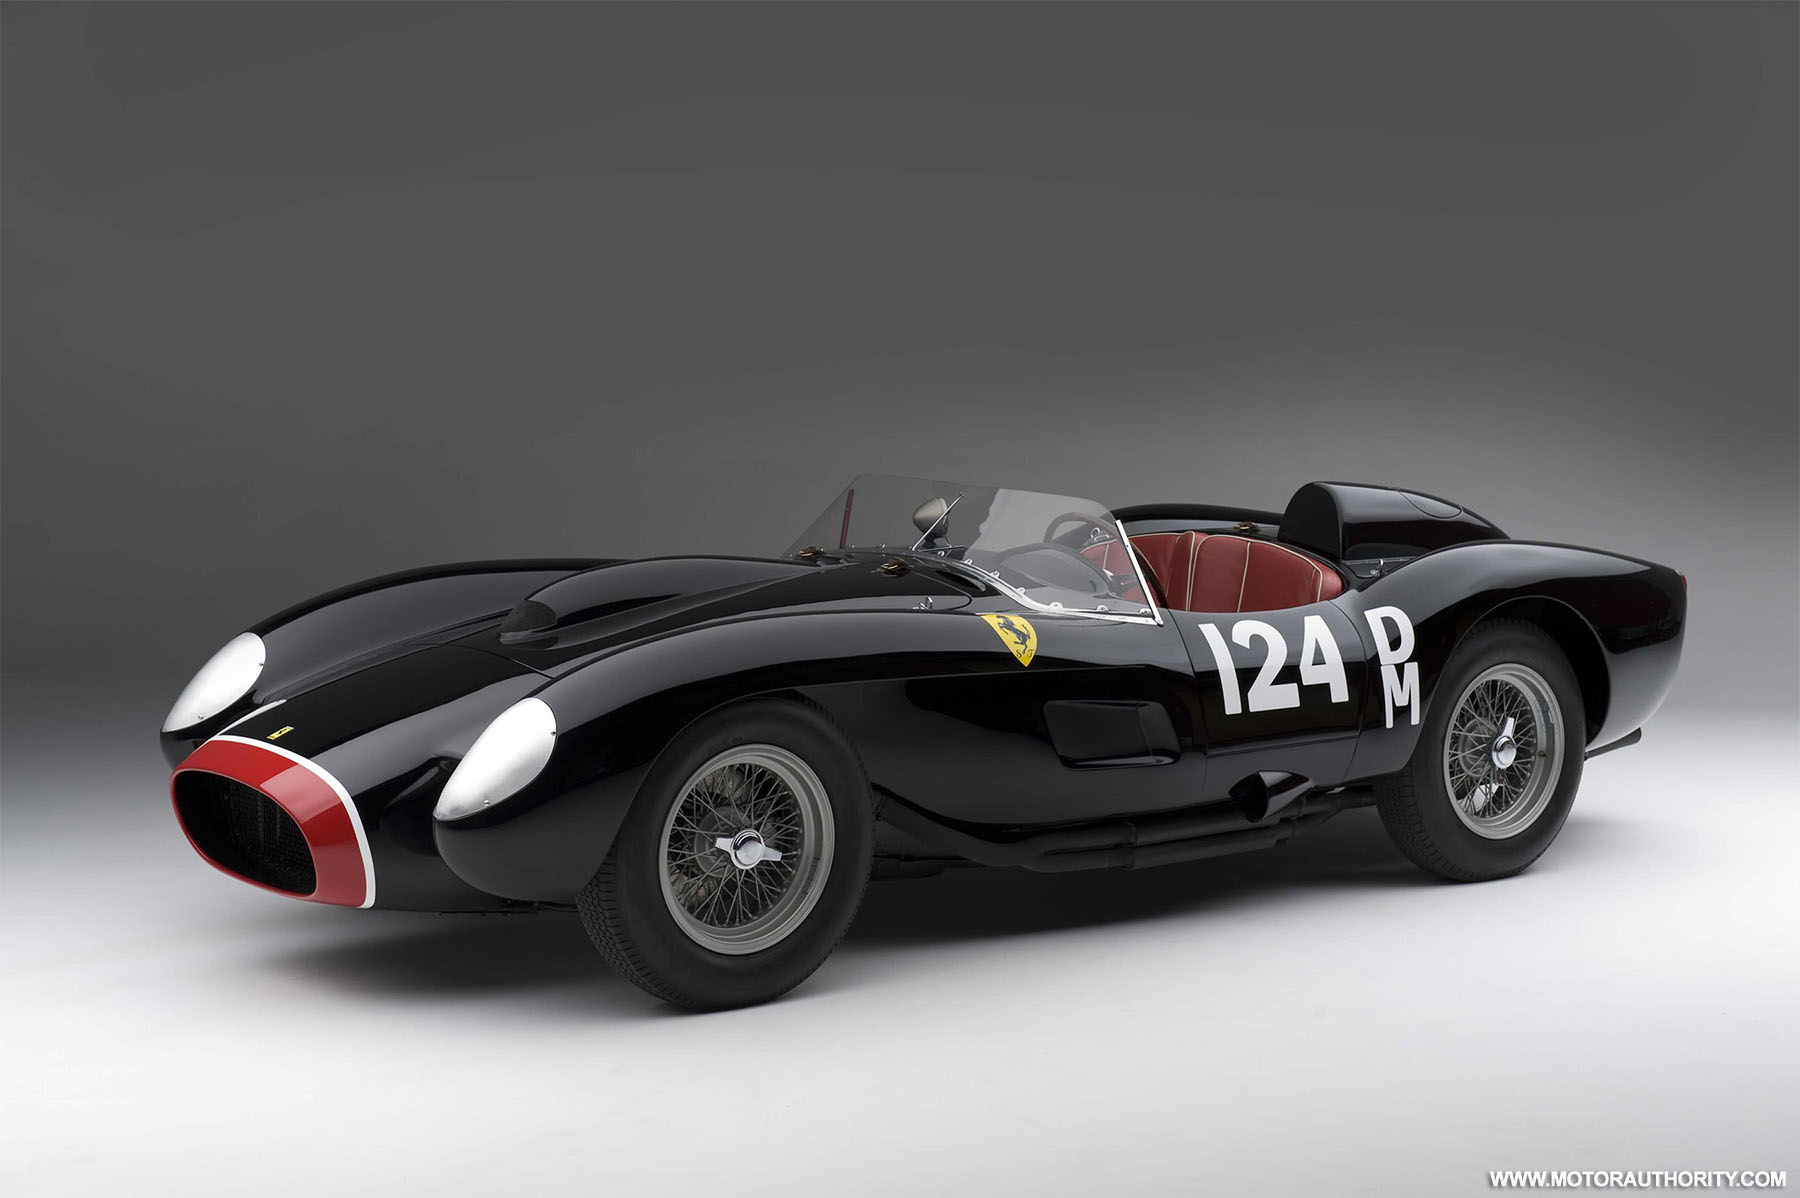 Ferrari 250 testarossa sets new world record for a car sold at auction vanachro Image collections